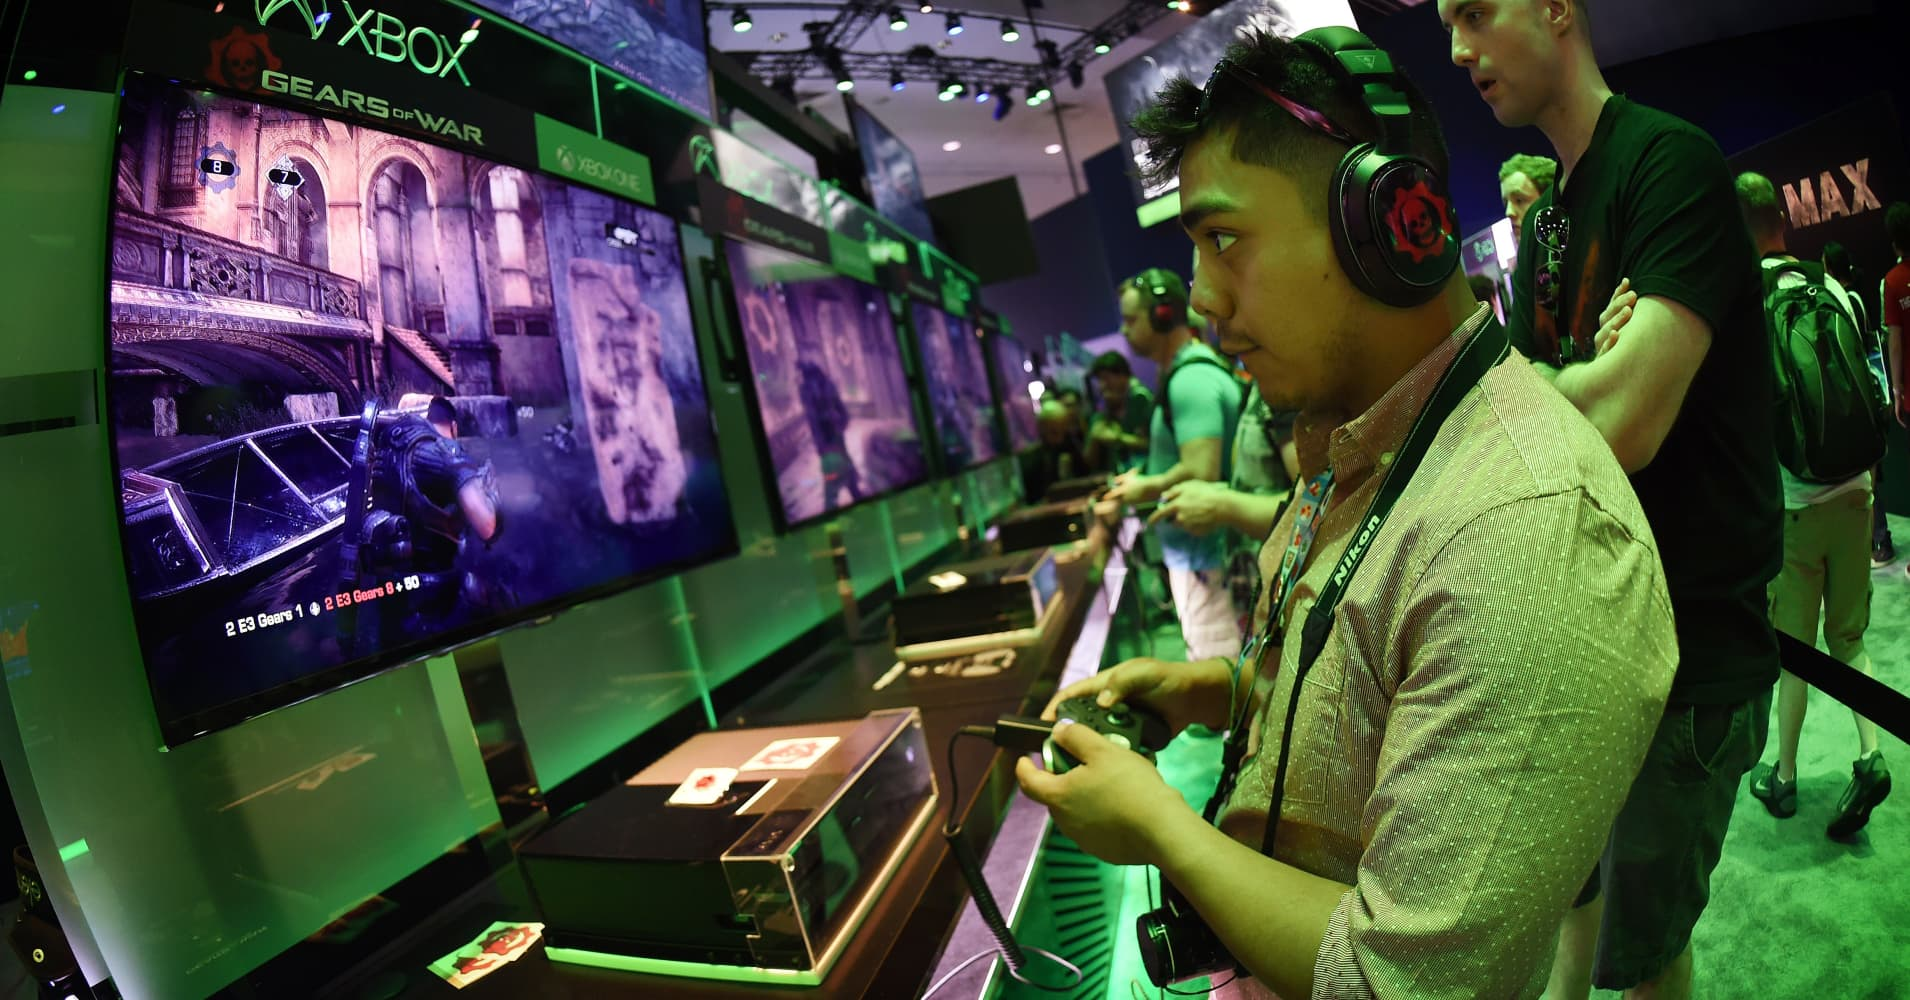 Gamers test new games at the Xbox display at the Electronic Entertainment Expo at the Convention Center in Los Angeles.